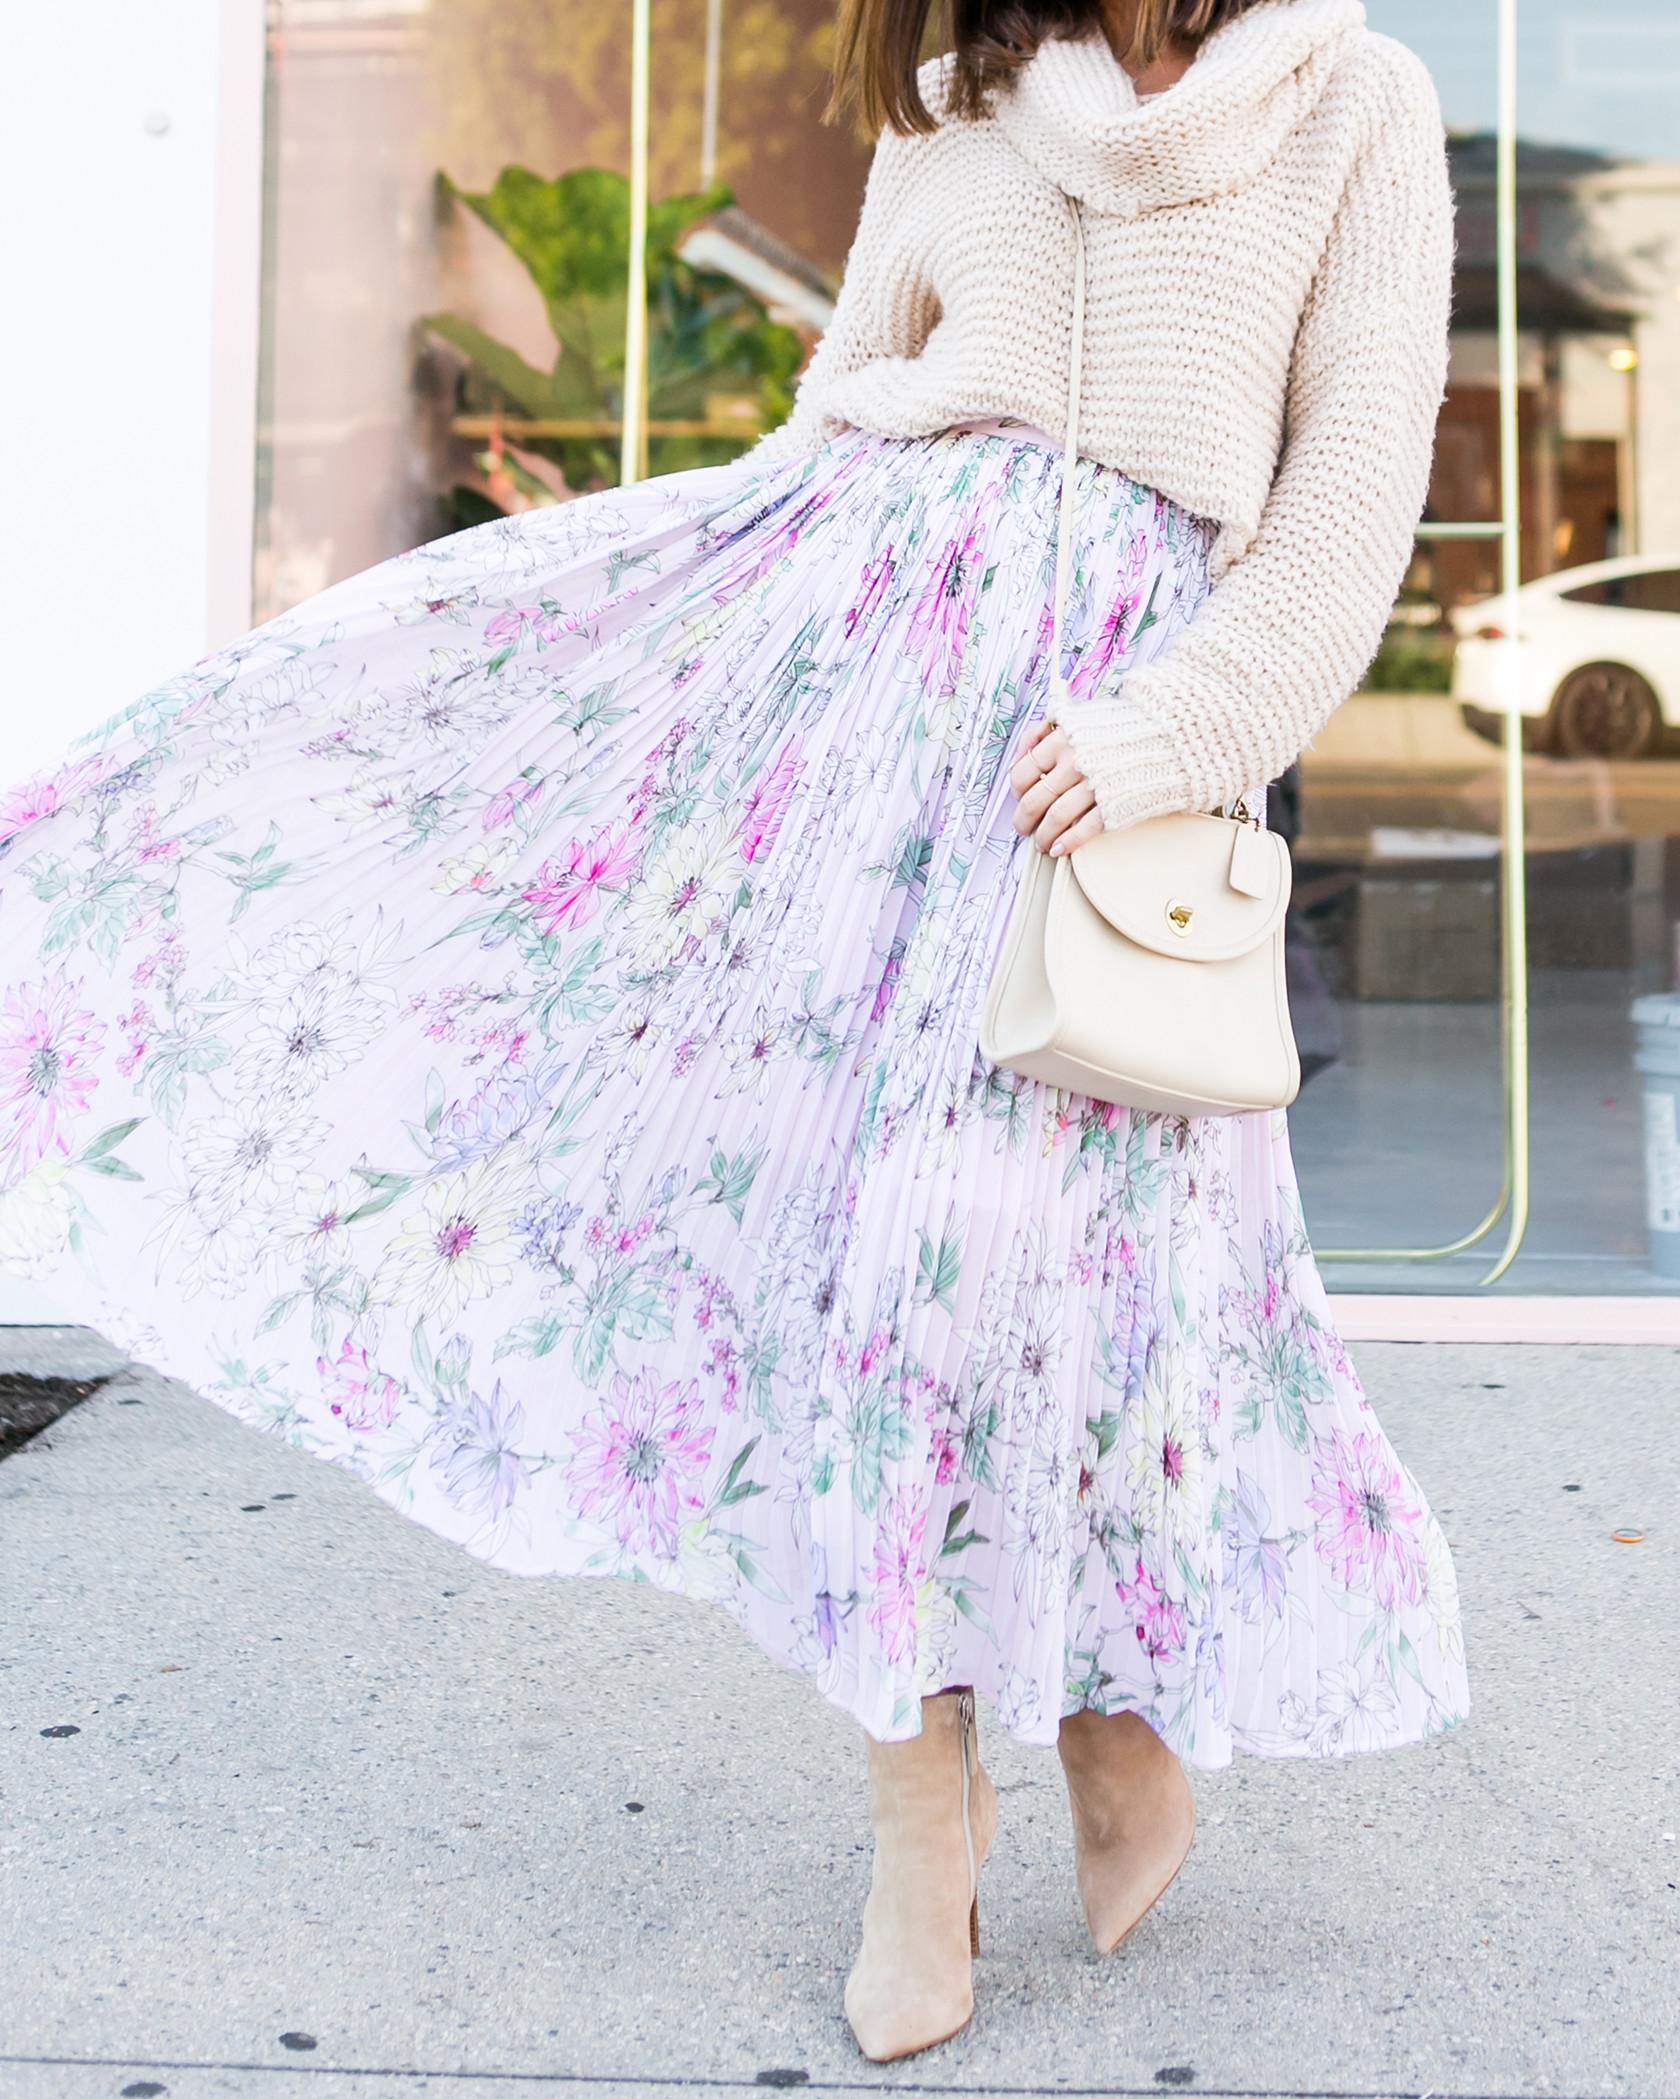 Pleated Floral Skirt 2018 Women Spring Fashion Trends